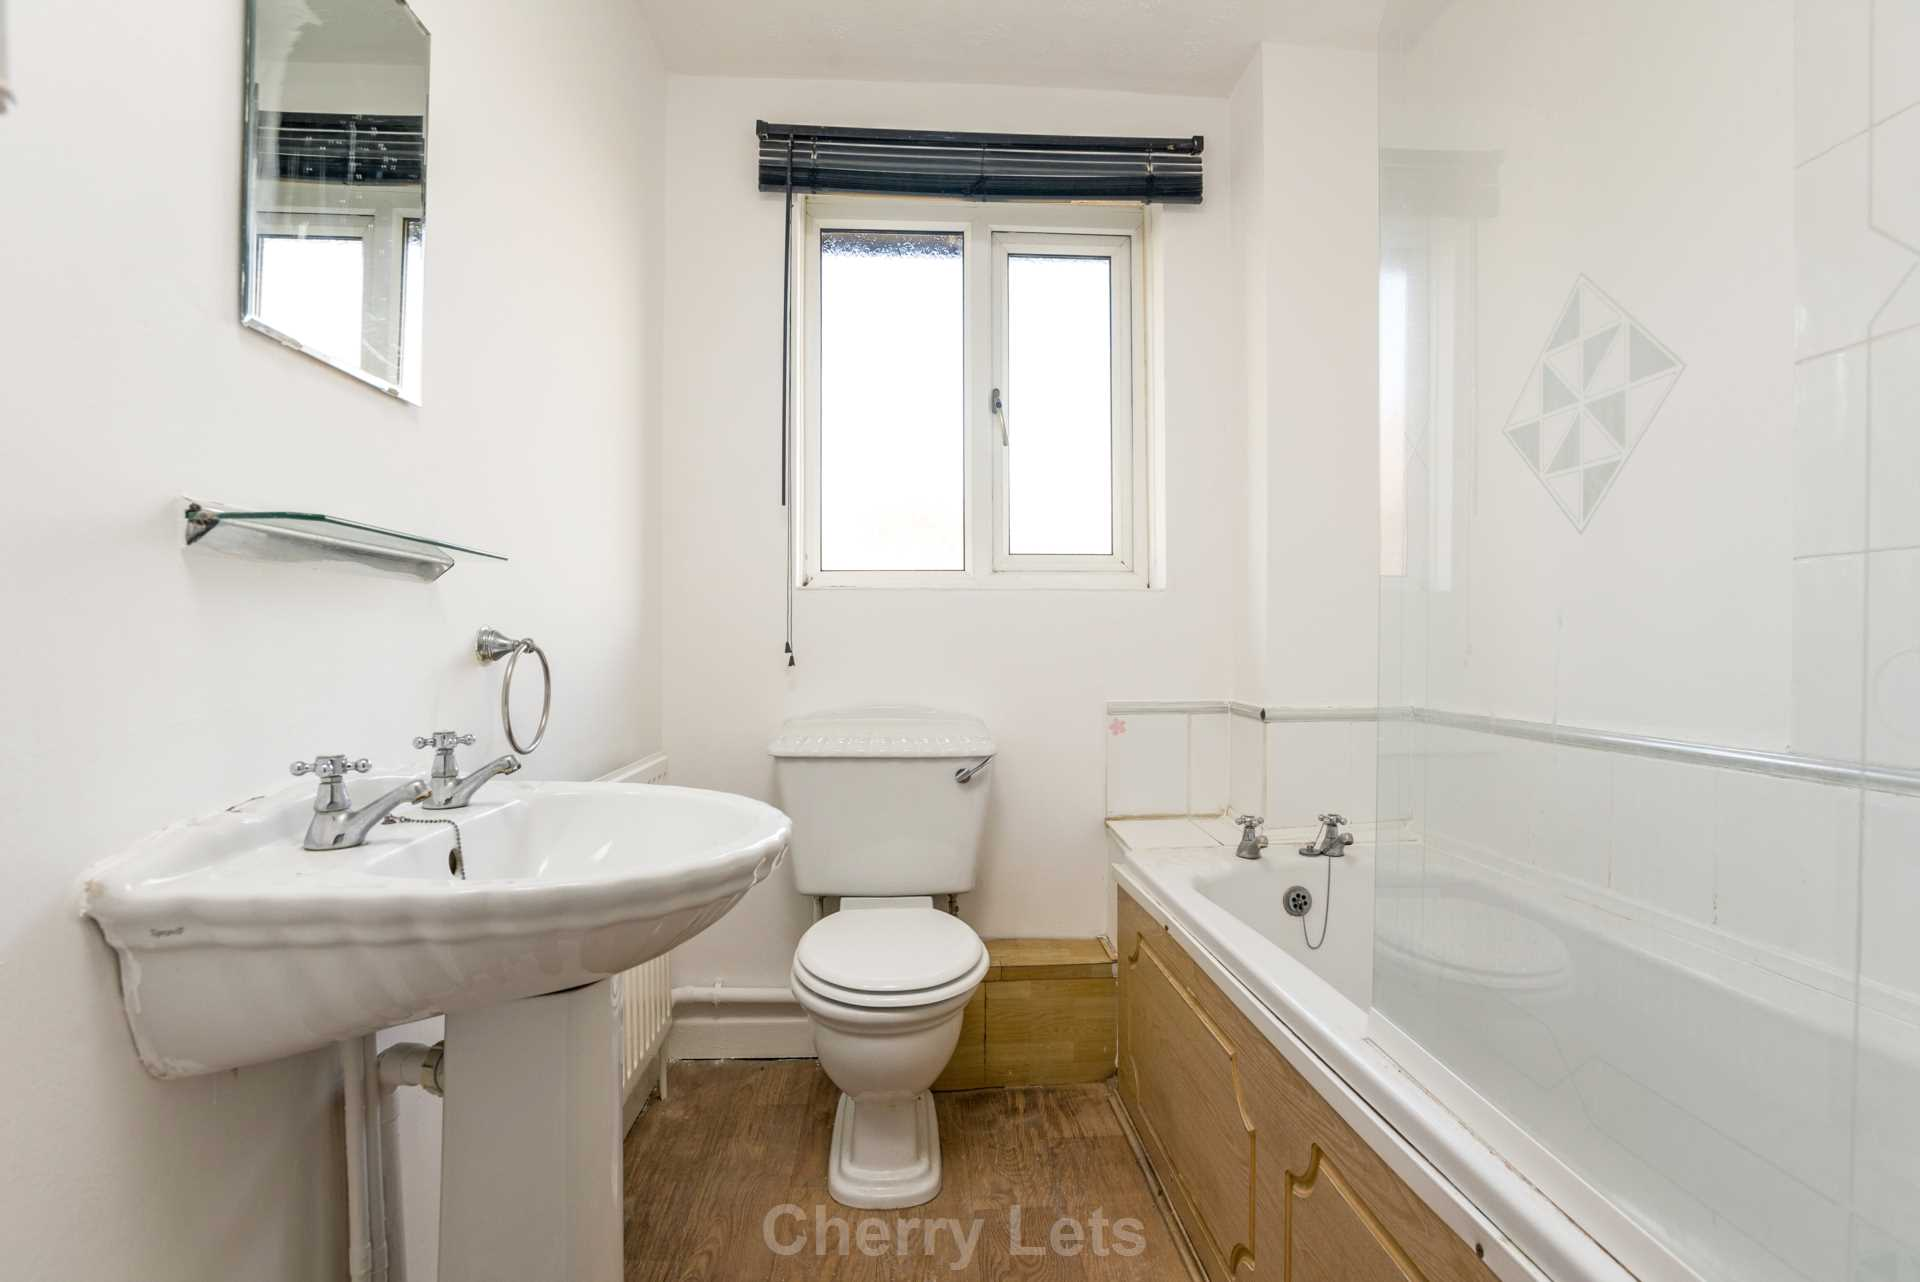 1 bed end of terrace house to rent in Bedford Close, Banbury, OX16 8